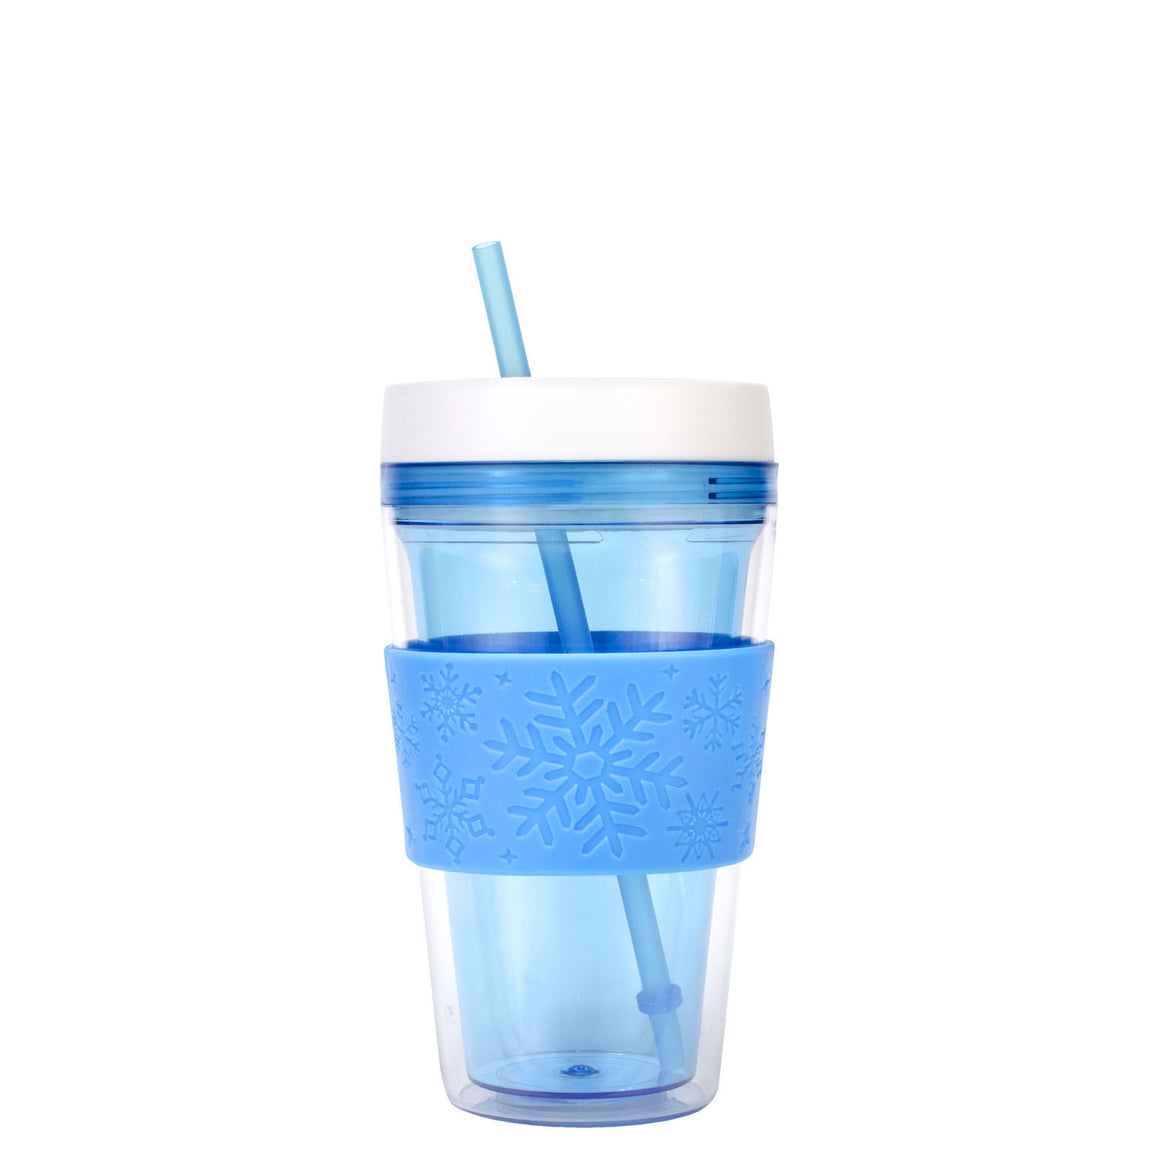 Green 20 Oz Callisto Snowflake Chiller Tumbler at Cool Gear Winter Holiday